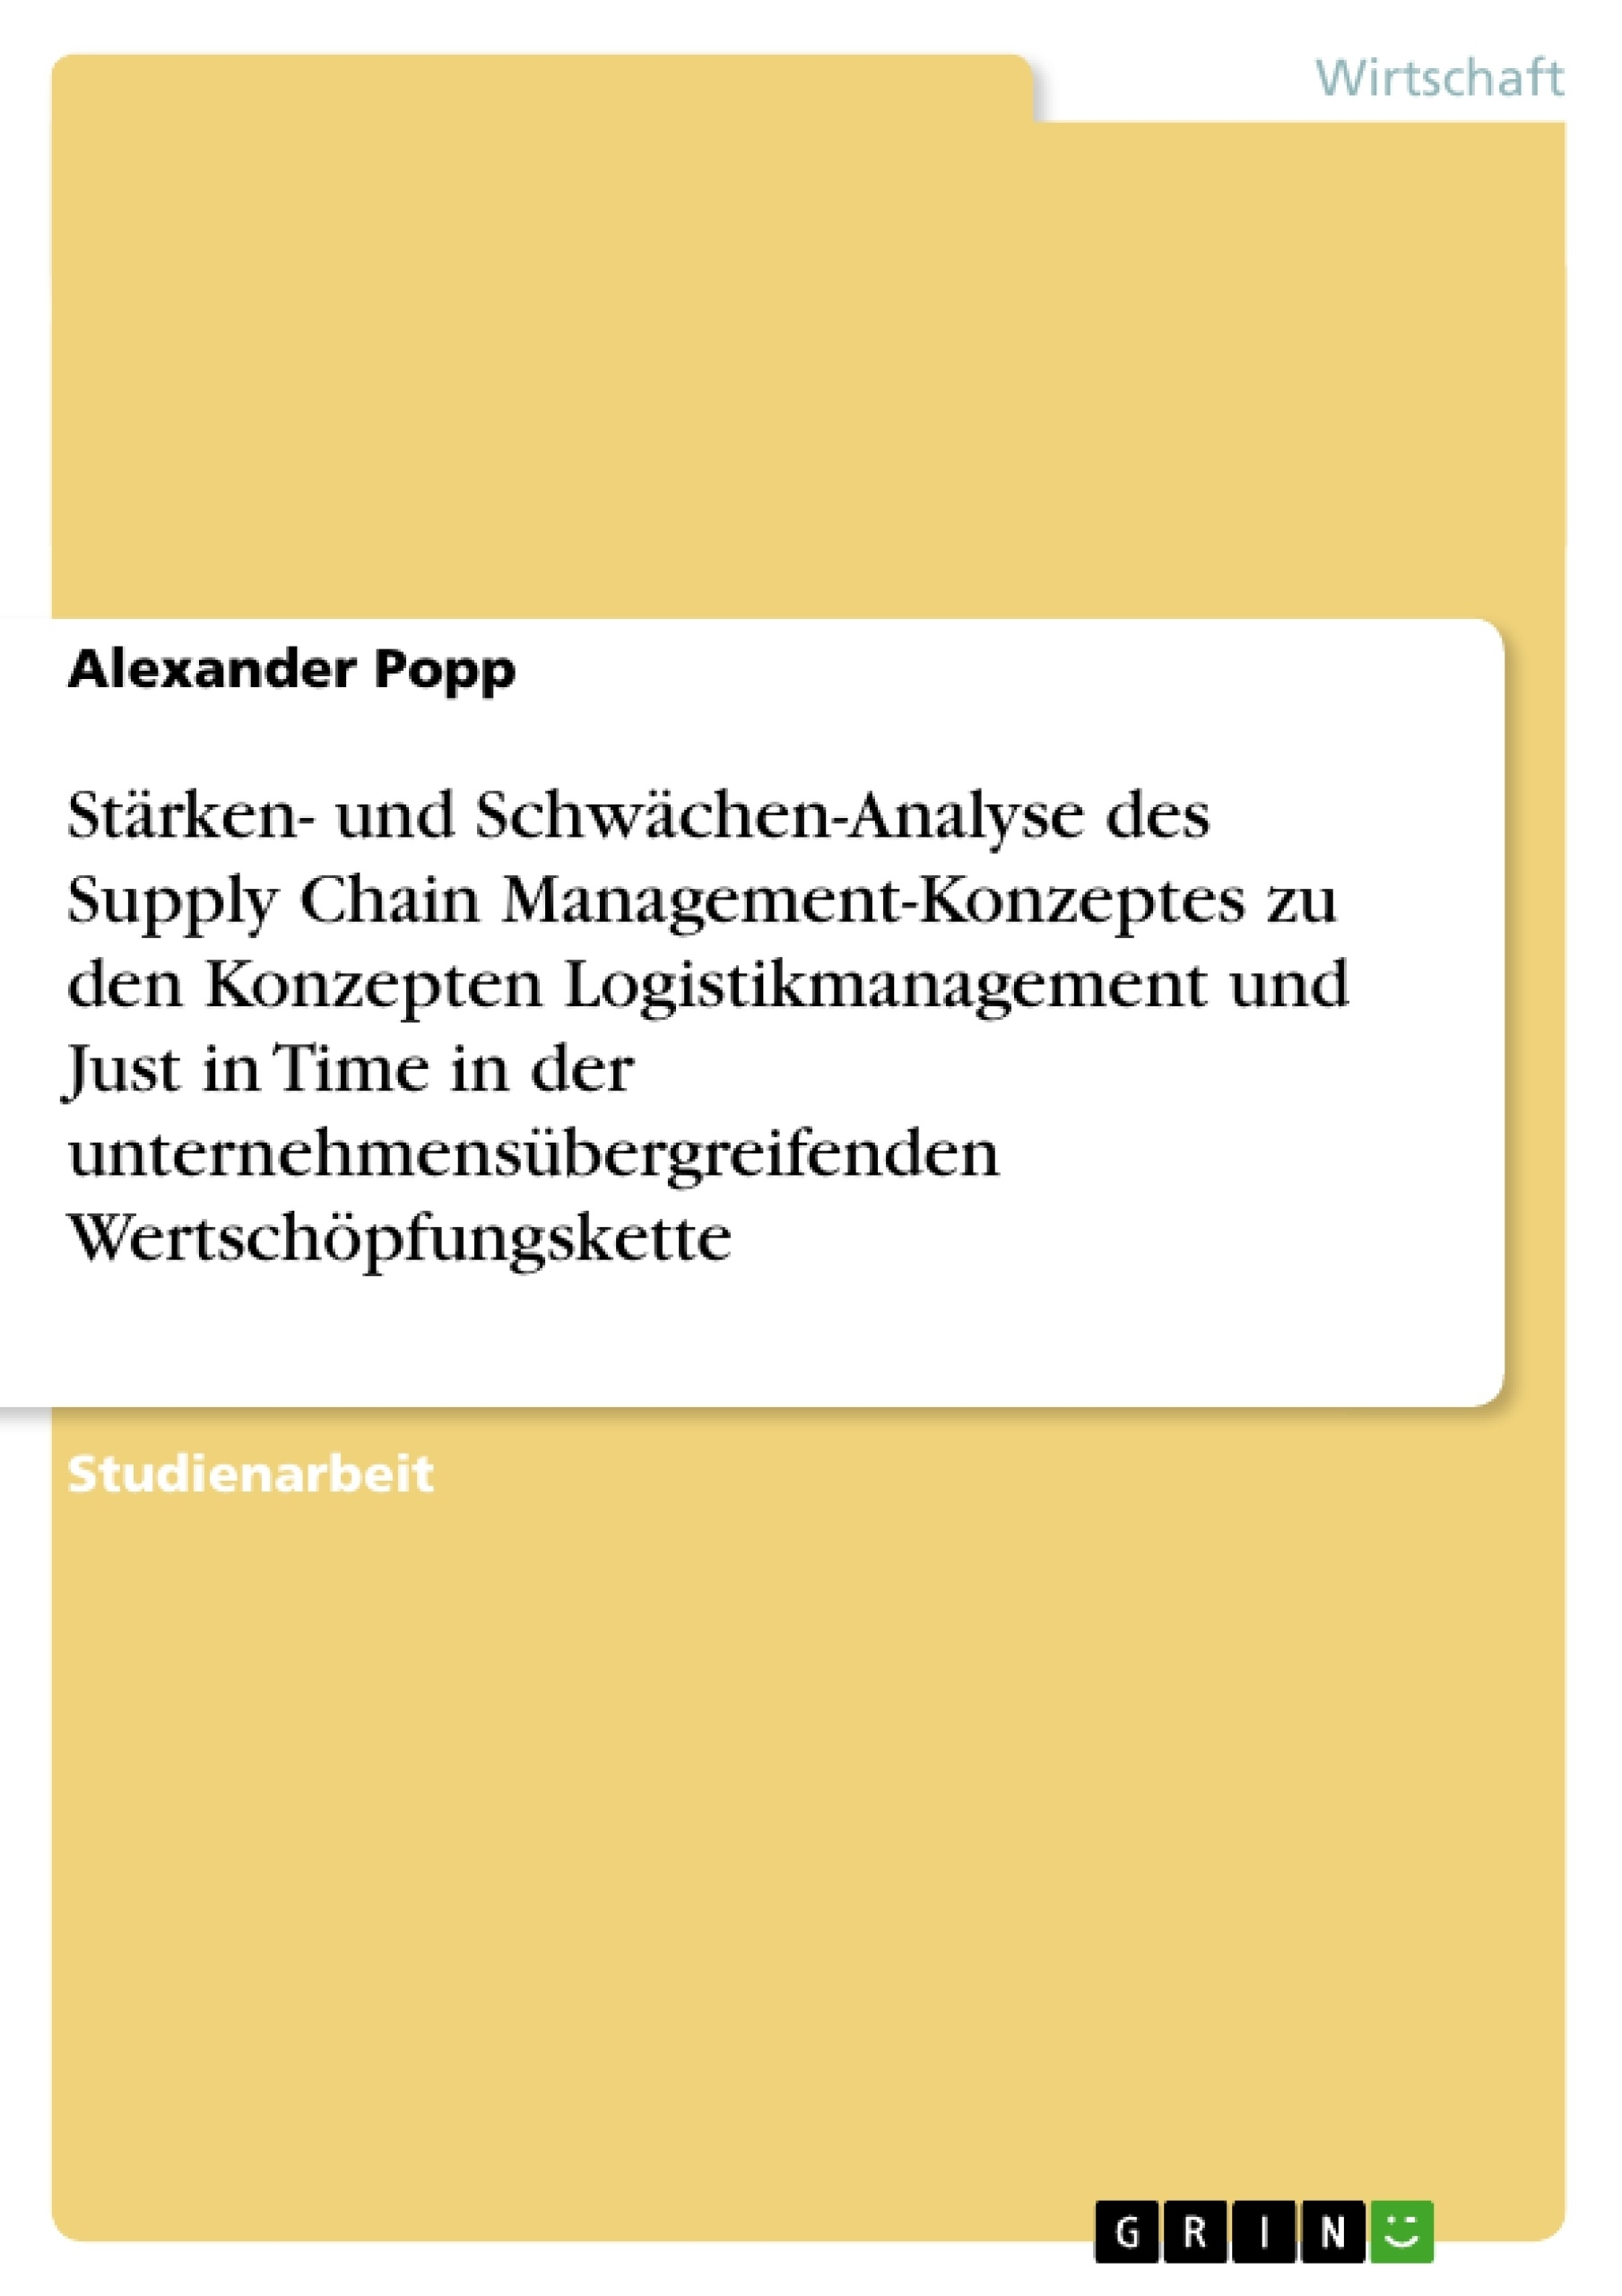 Stärken Und Schwächen Grin Stärken Und Schwächen Analyse Des Supply Chain Management Konzeptes Zu Den Konzepten Logistikmanagement Und Just In Time In Der